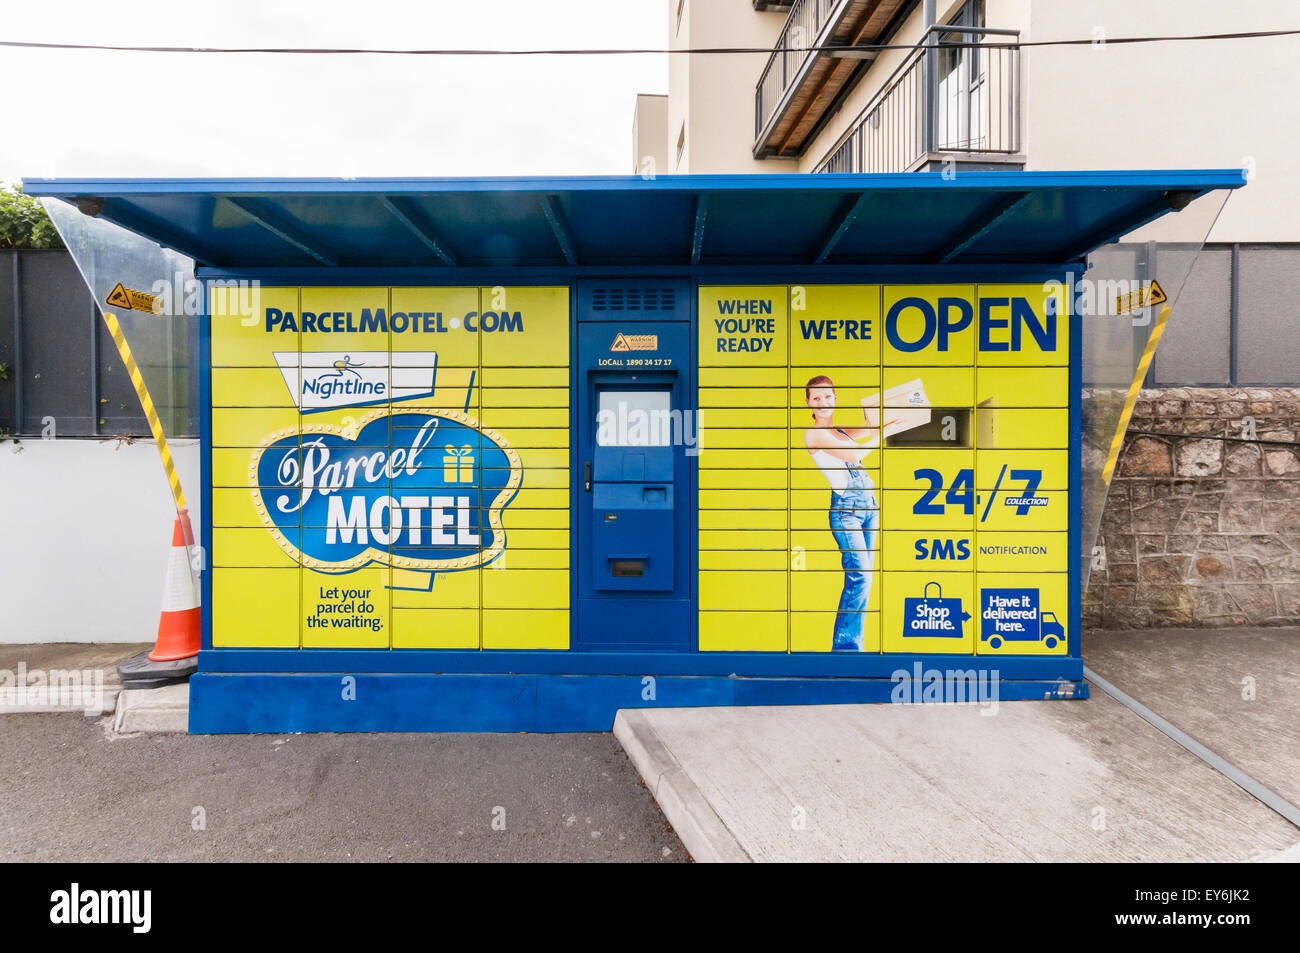 Parcel Motel, An Automated Storage System For Parcel Delivery And  Collection In Ireland Particularly Popular